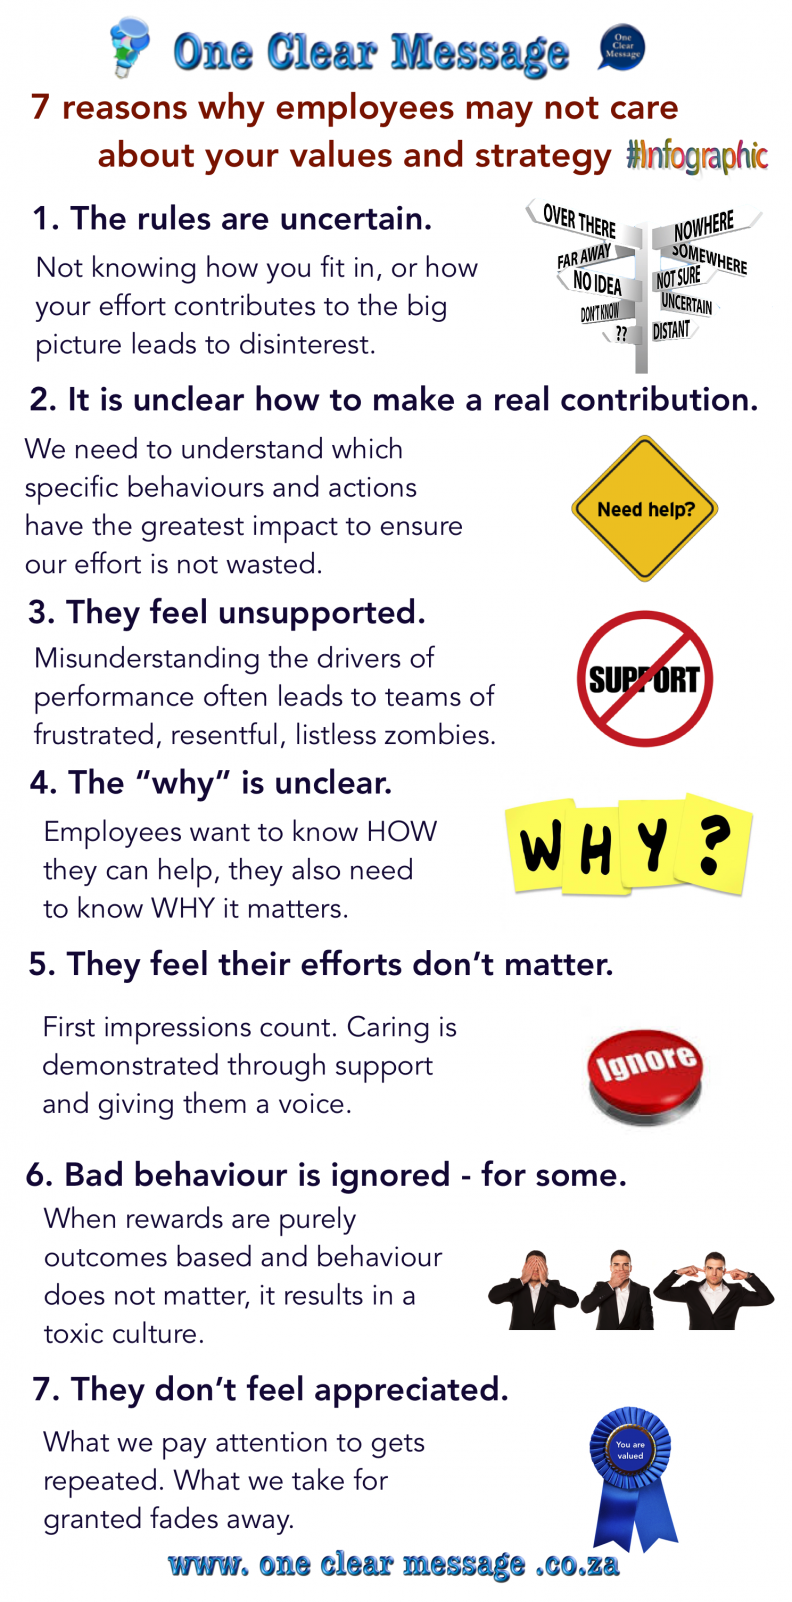 7 reasons why your employees may not care about your values and strategy infographic